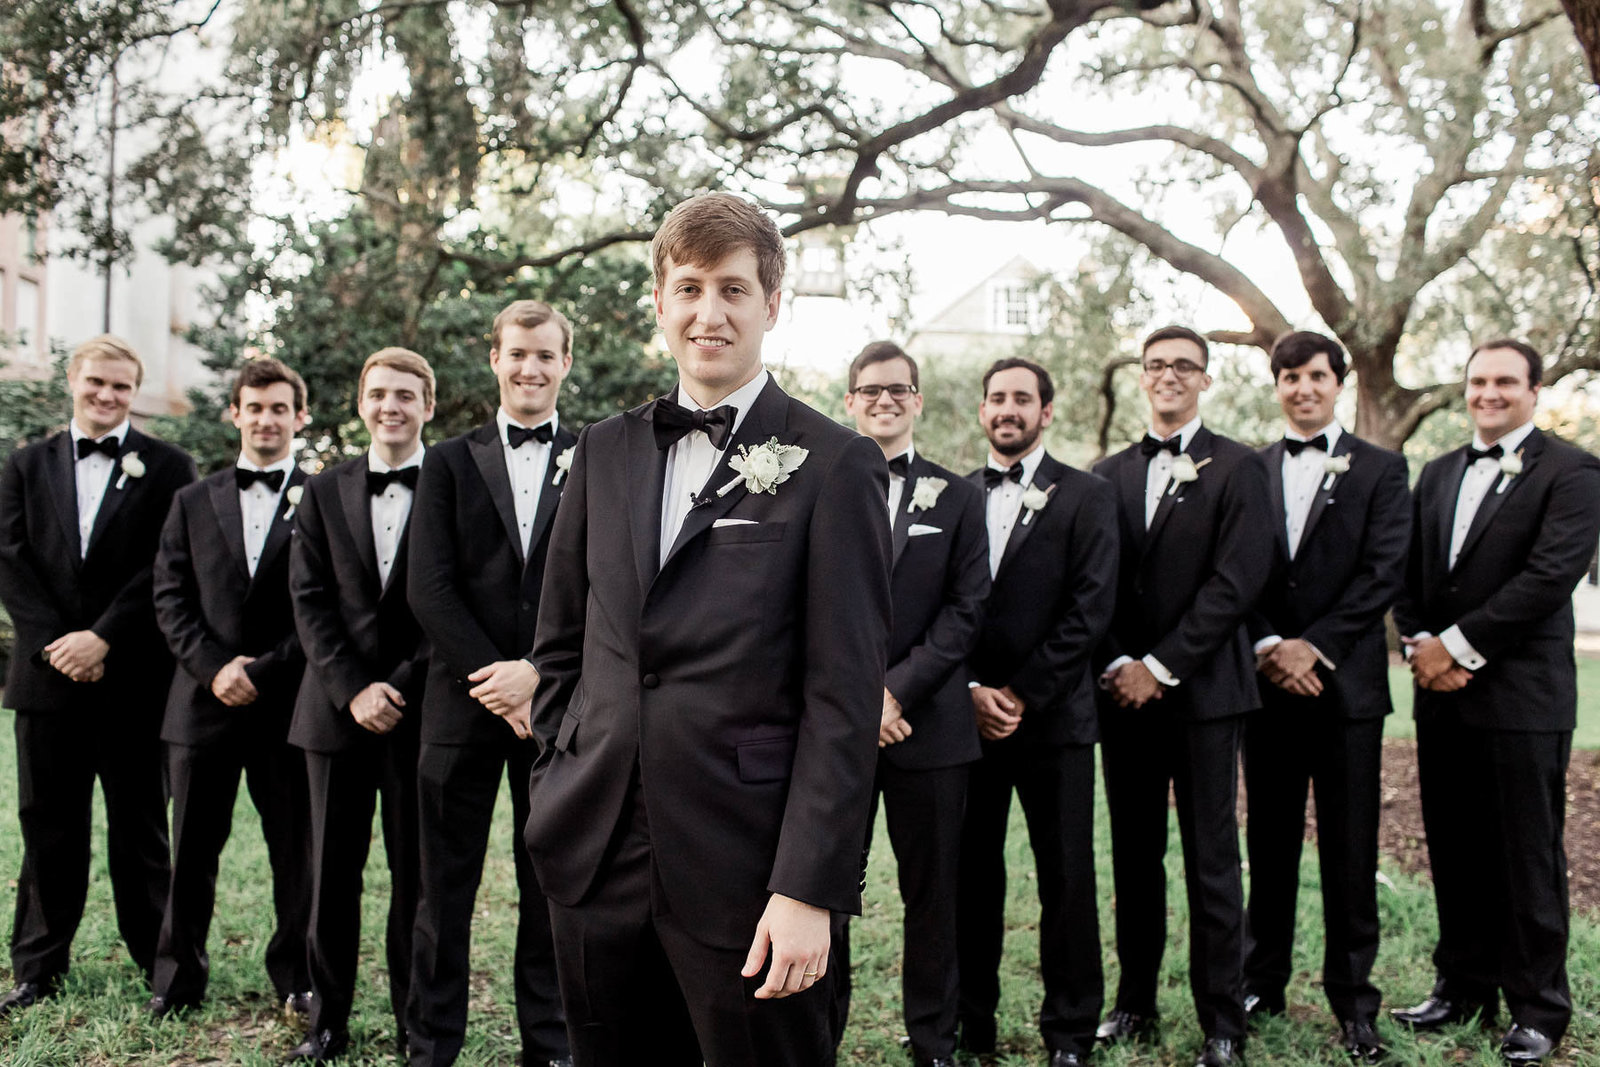 Groom and groomsmen under trees in Washington Square, Charleston, South Carolina